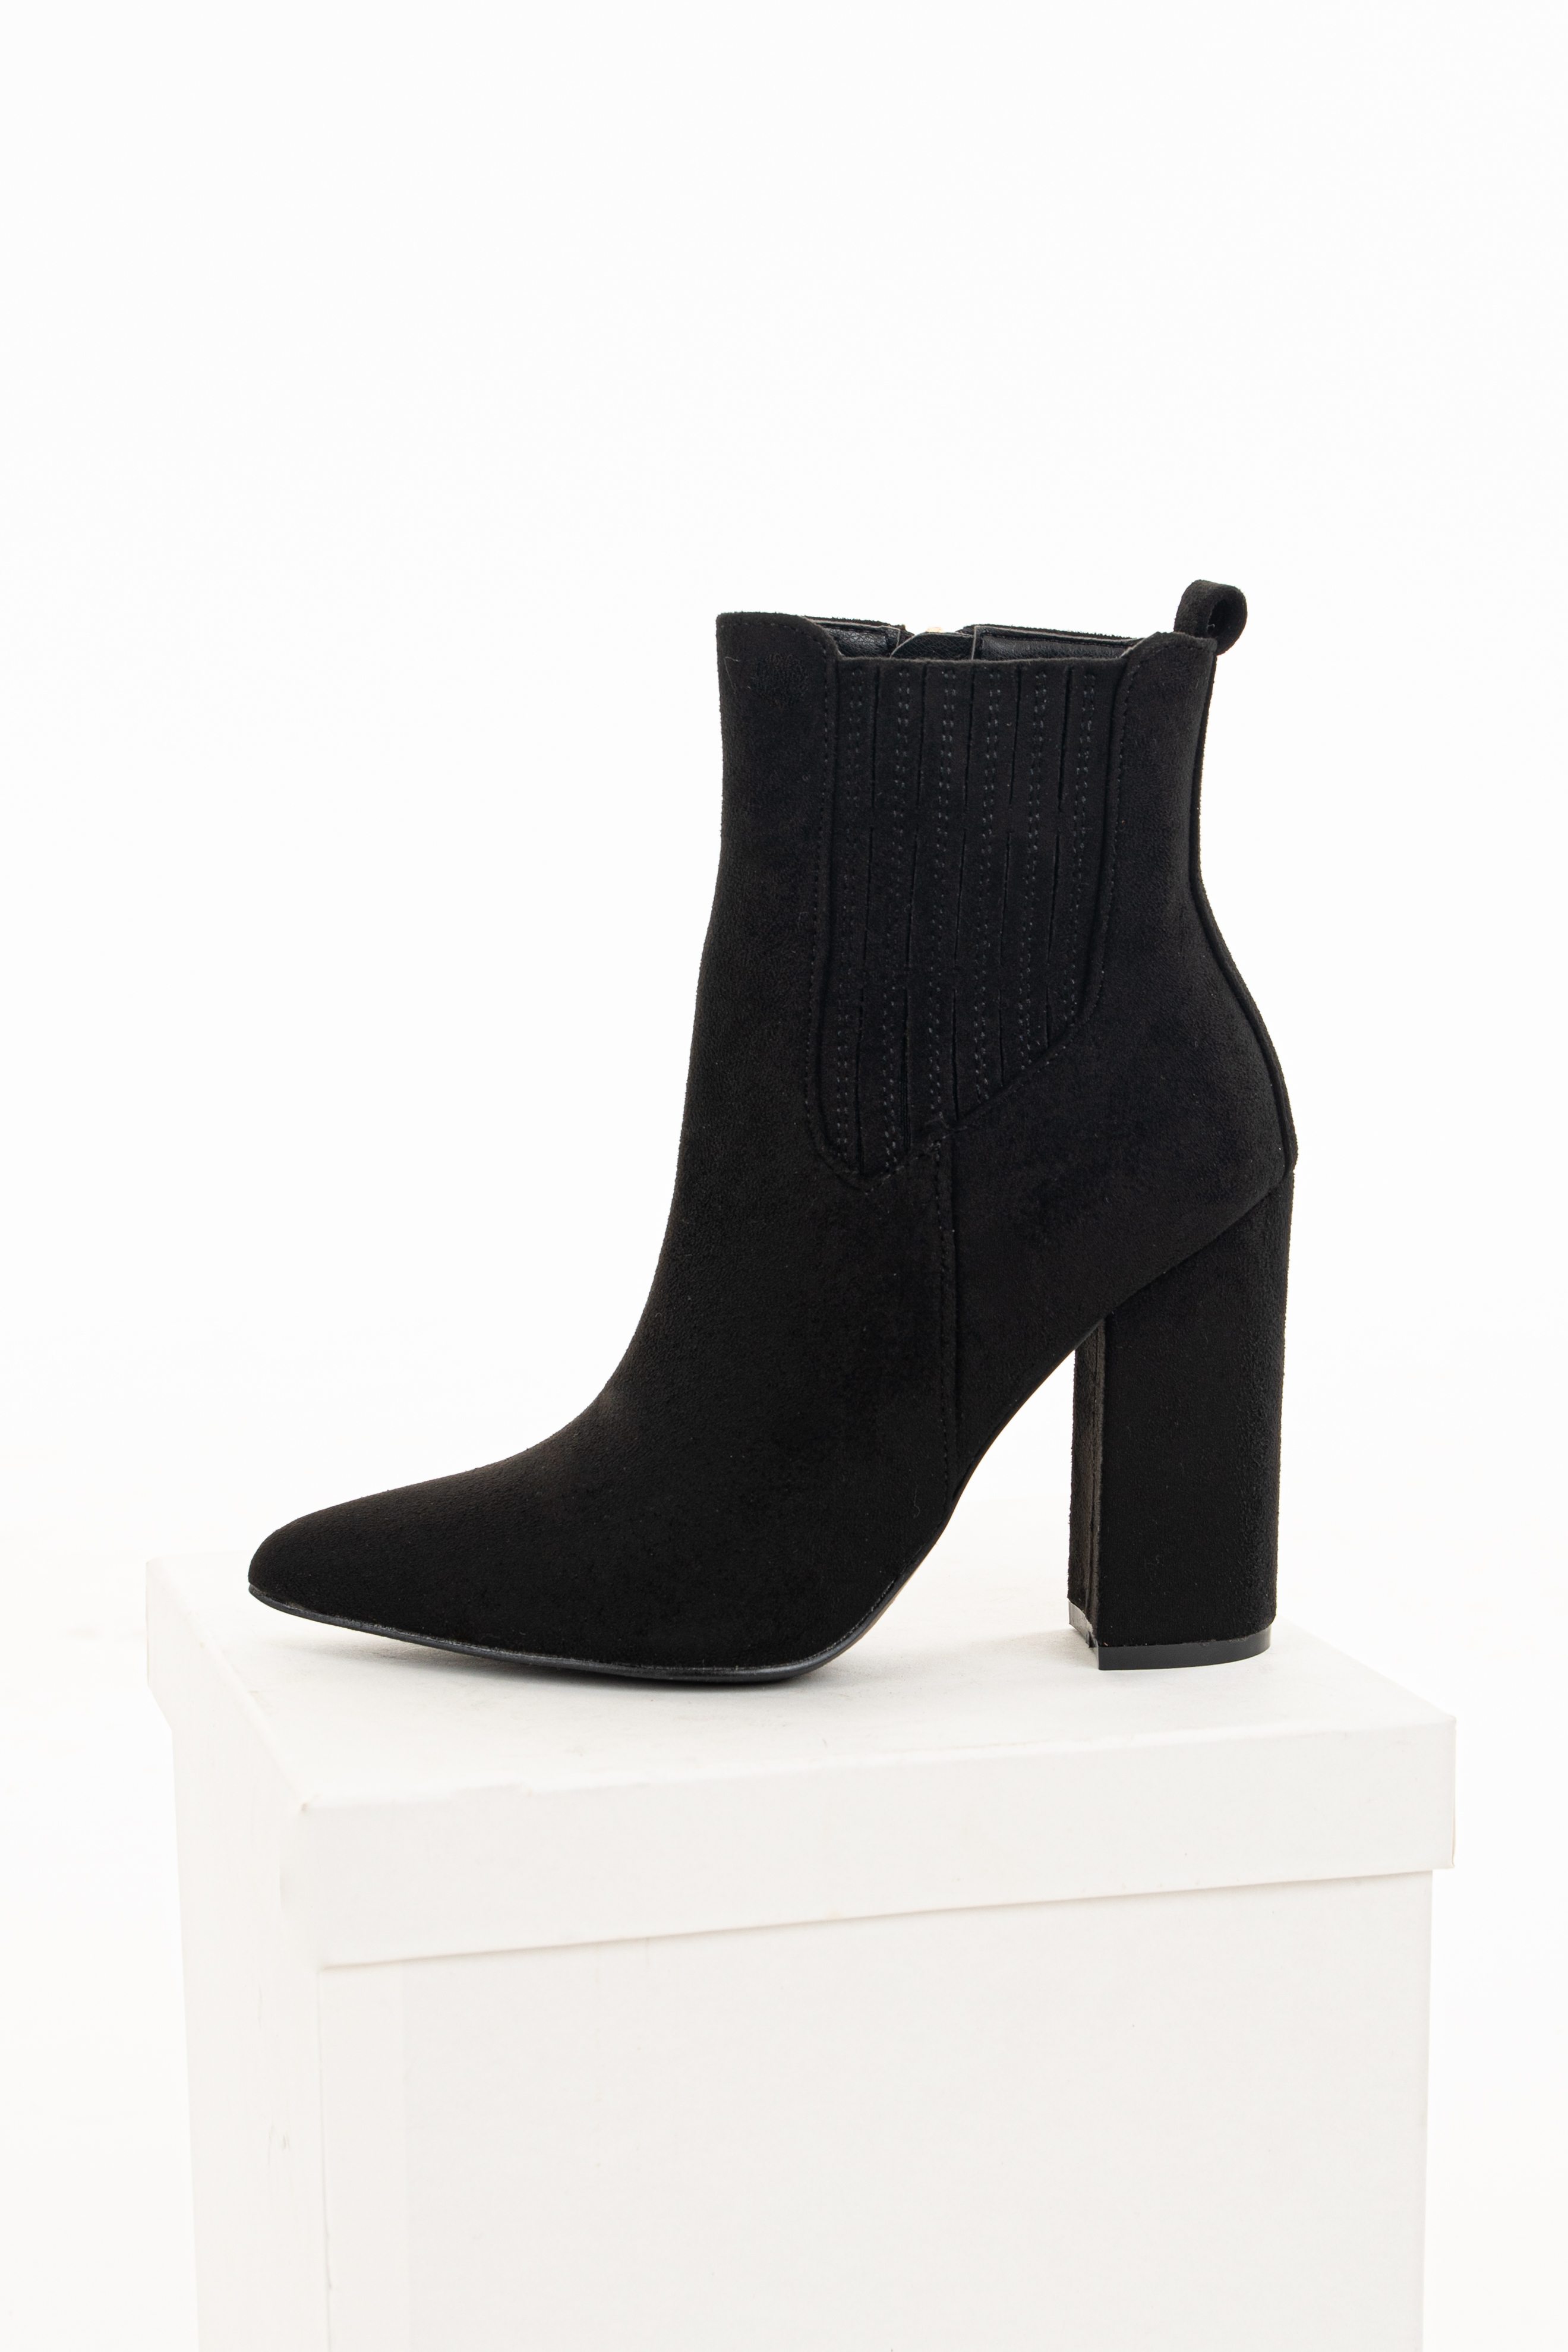 Black Faux Suede Chunky Heel Pointed Toe Booties